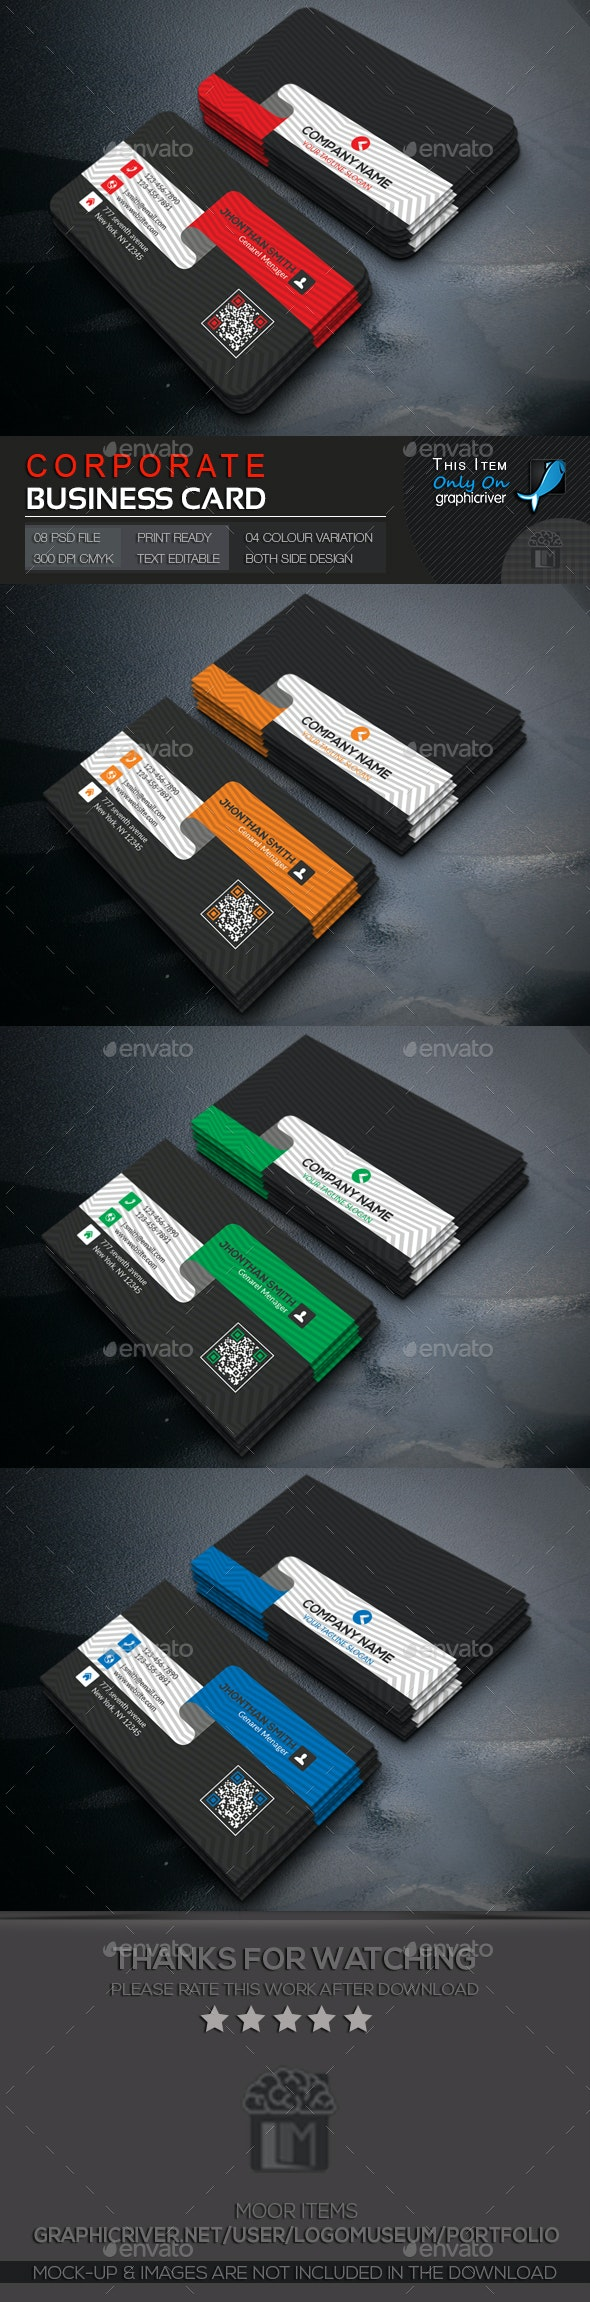 Corporate Business Card - Creative Business Cards